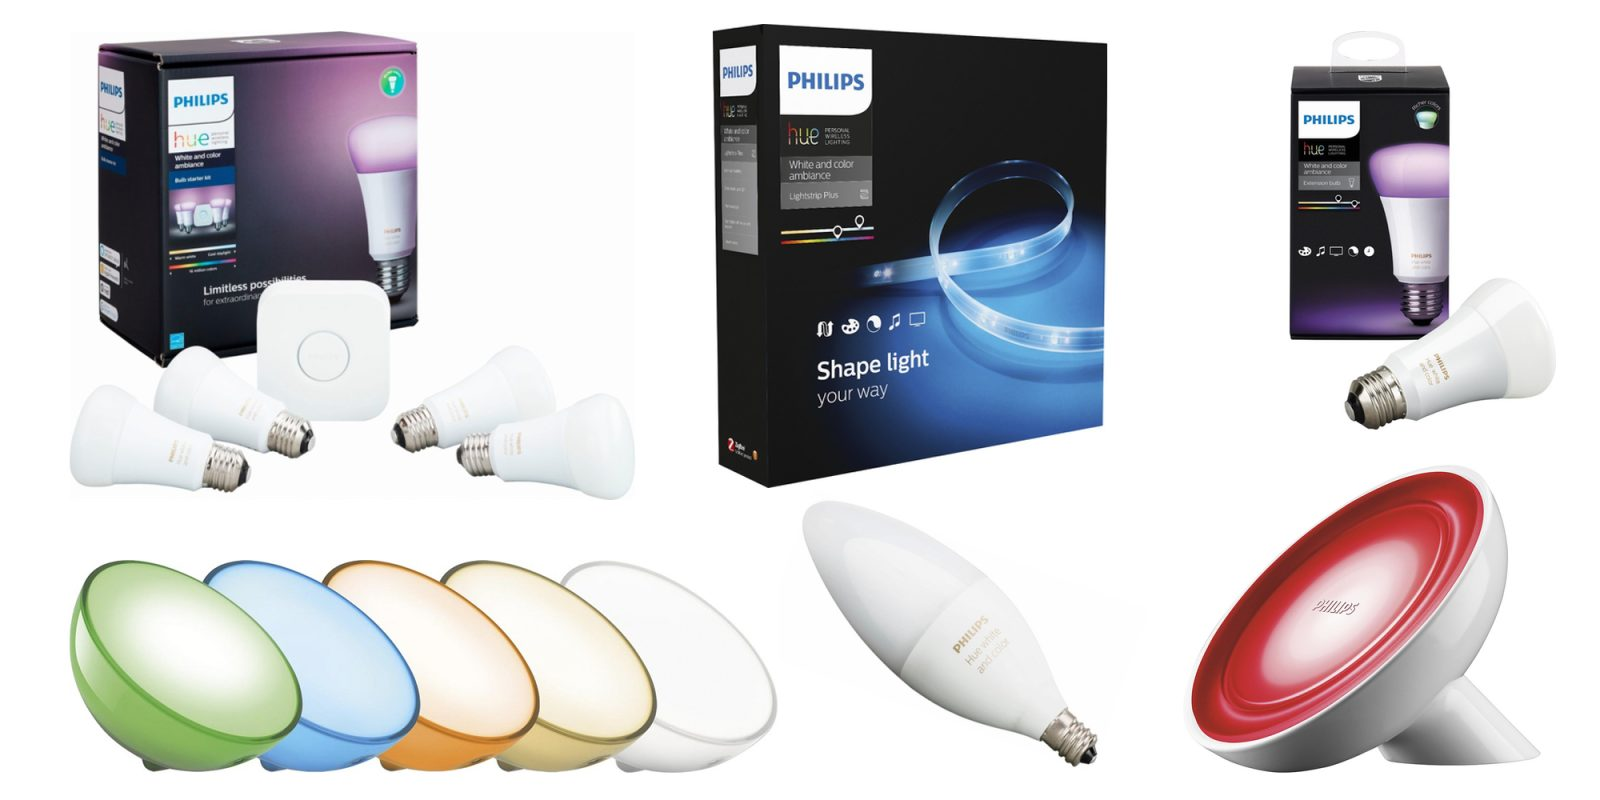 Cyber Monday takes up to 45% off Philips Hue Smart Lights